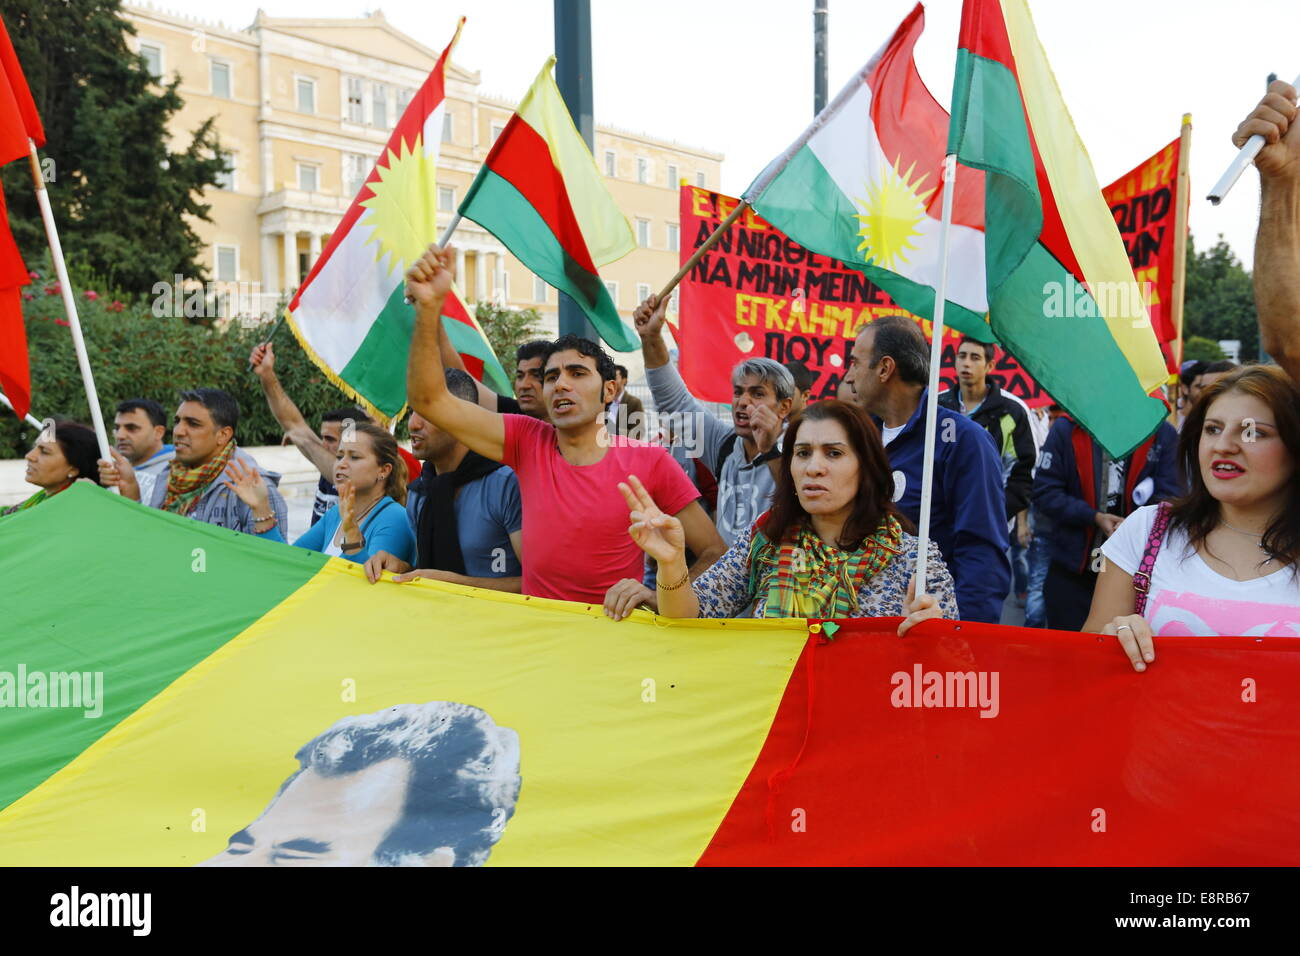 Athens, Greece. 13th October 2014. The protest march passes by the Greek Parliament. Kurds living in Greece protested - Stock Image